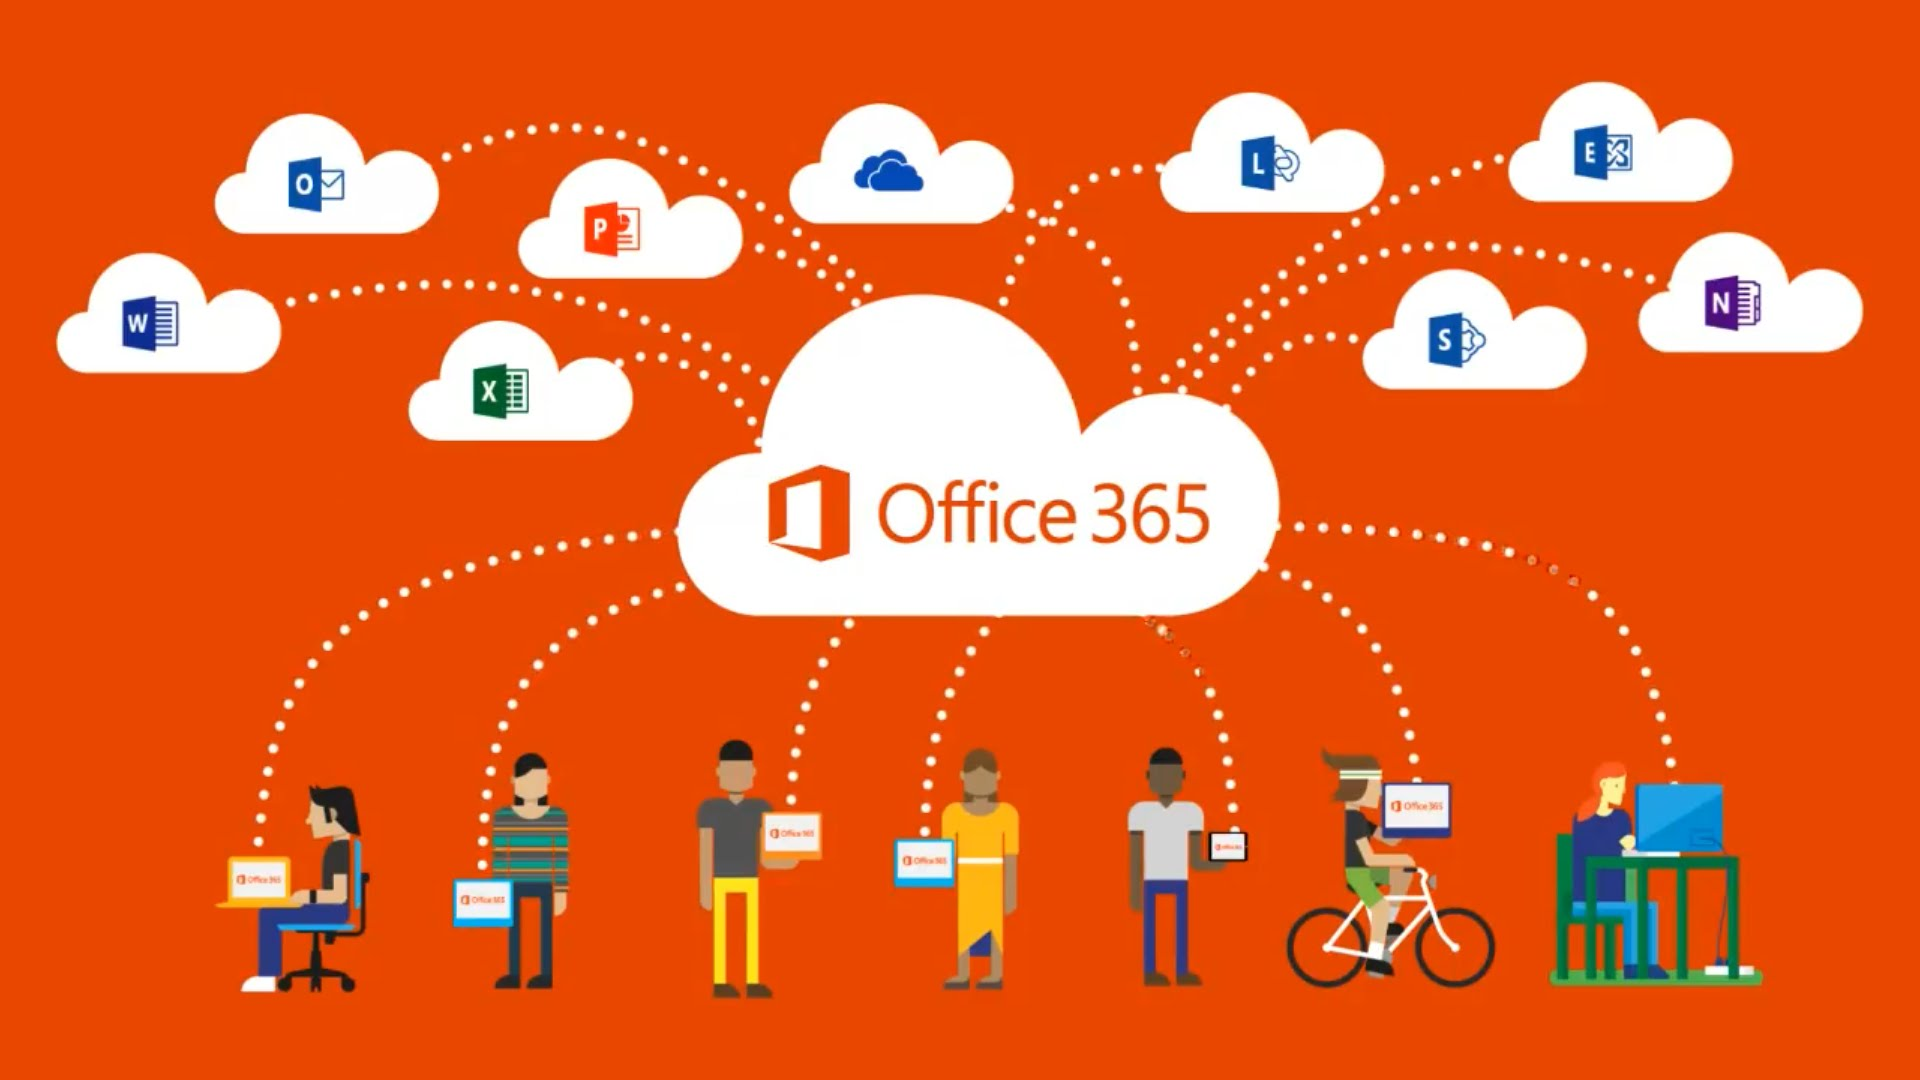 Working in the Cloud - Office 365